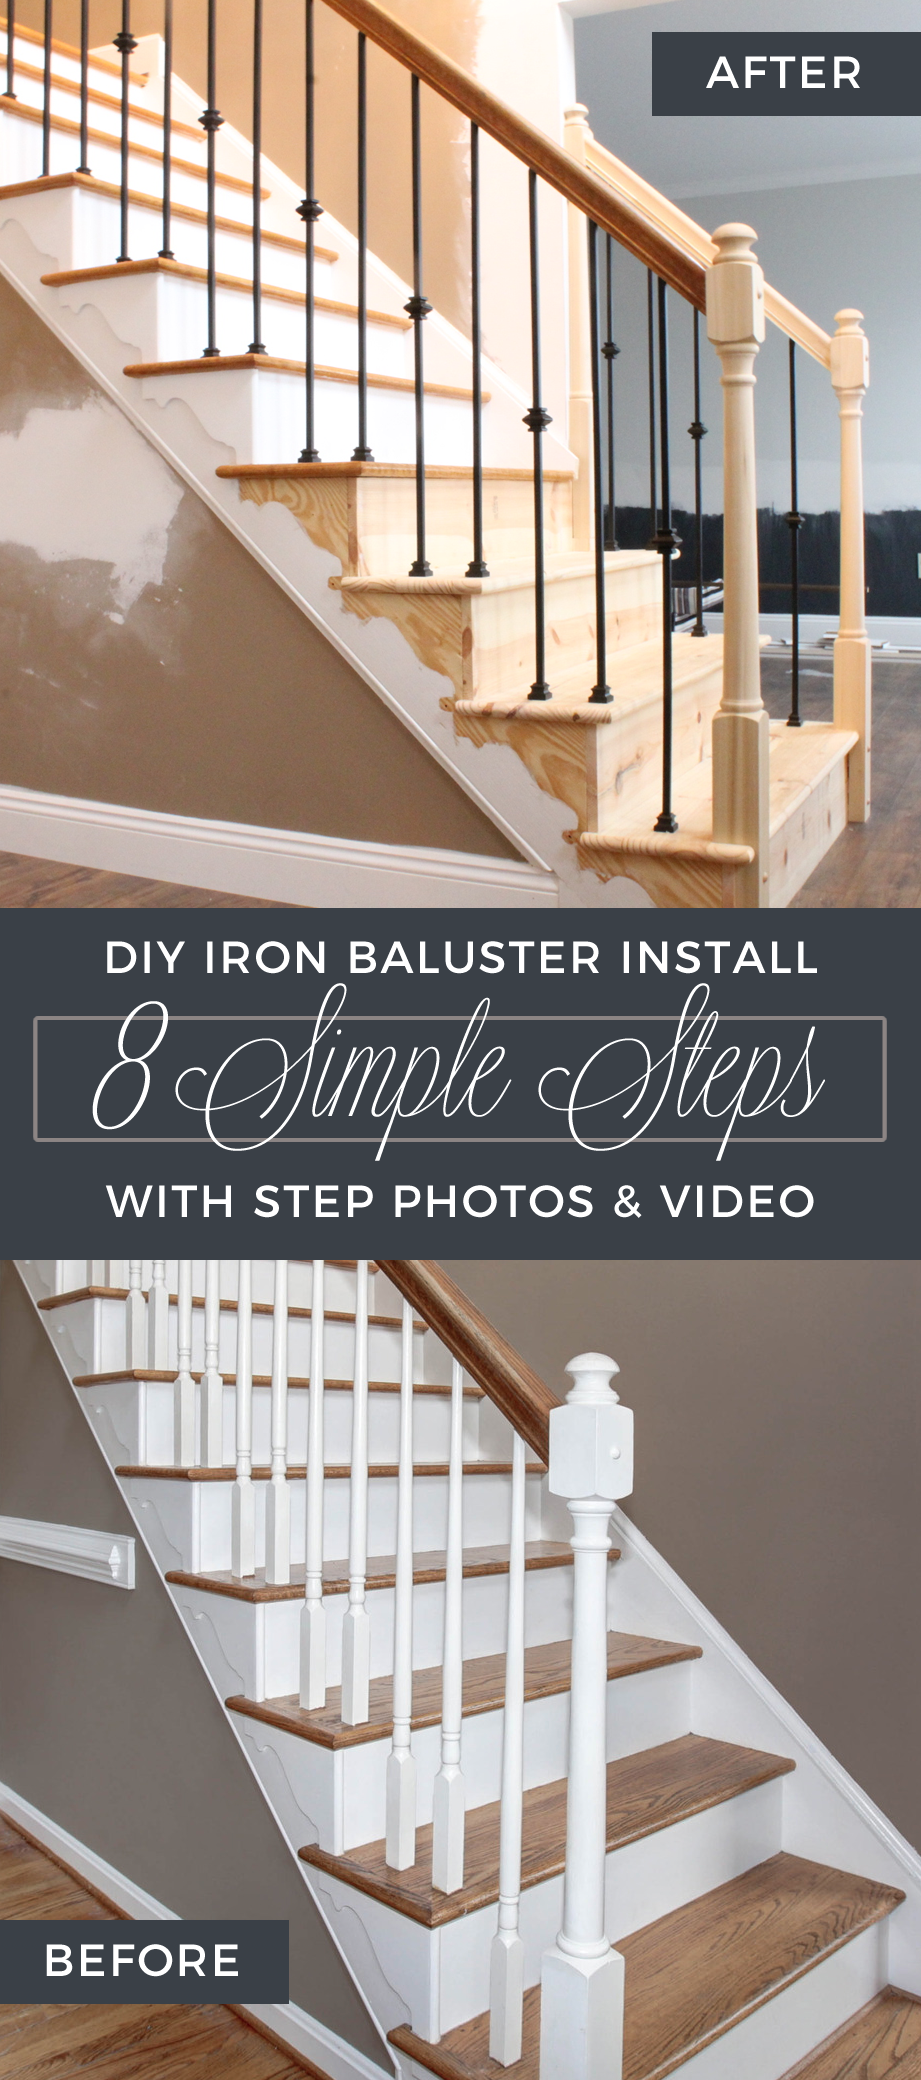 Attractive DIY Wrought Iron Baluster (Stair Spindle) Install With Step Photos And How  To Video. How To Install Iron Stair Balusters In 8 Simple Steps   Itu0027s Easy!